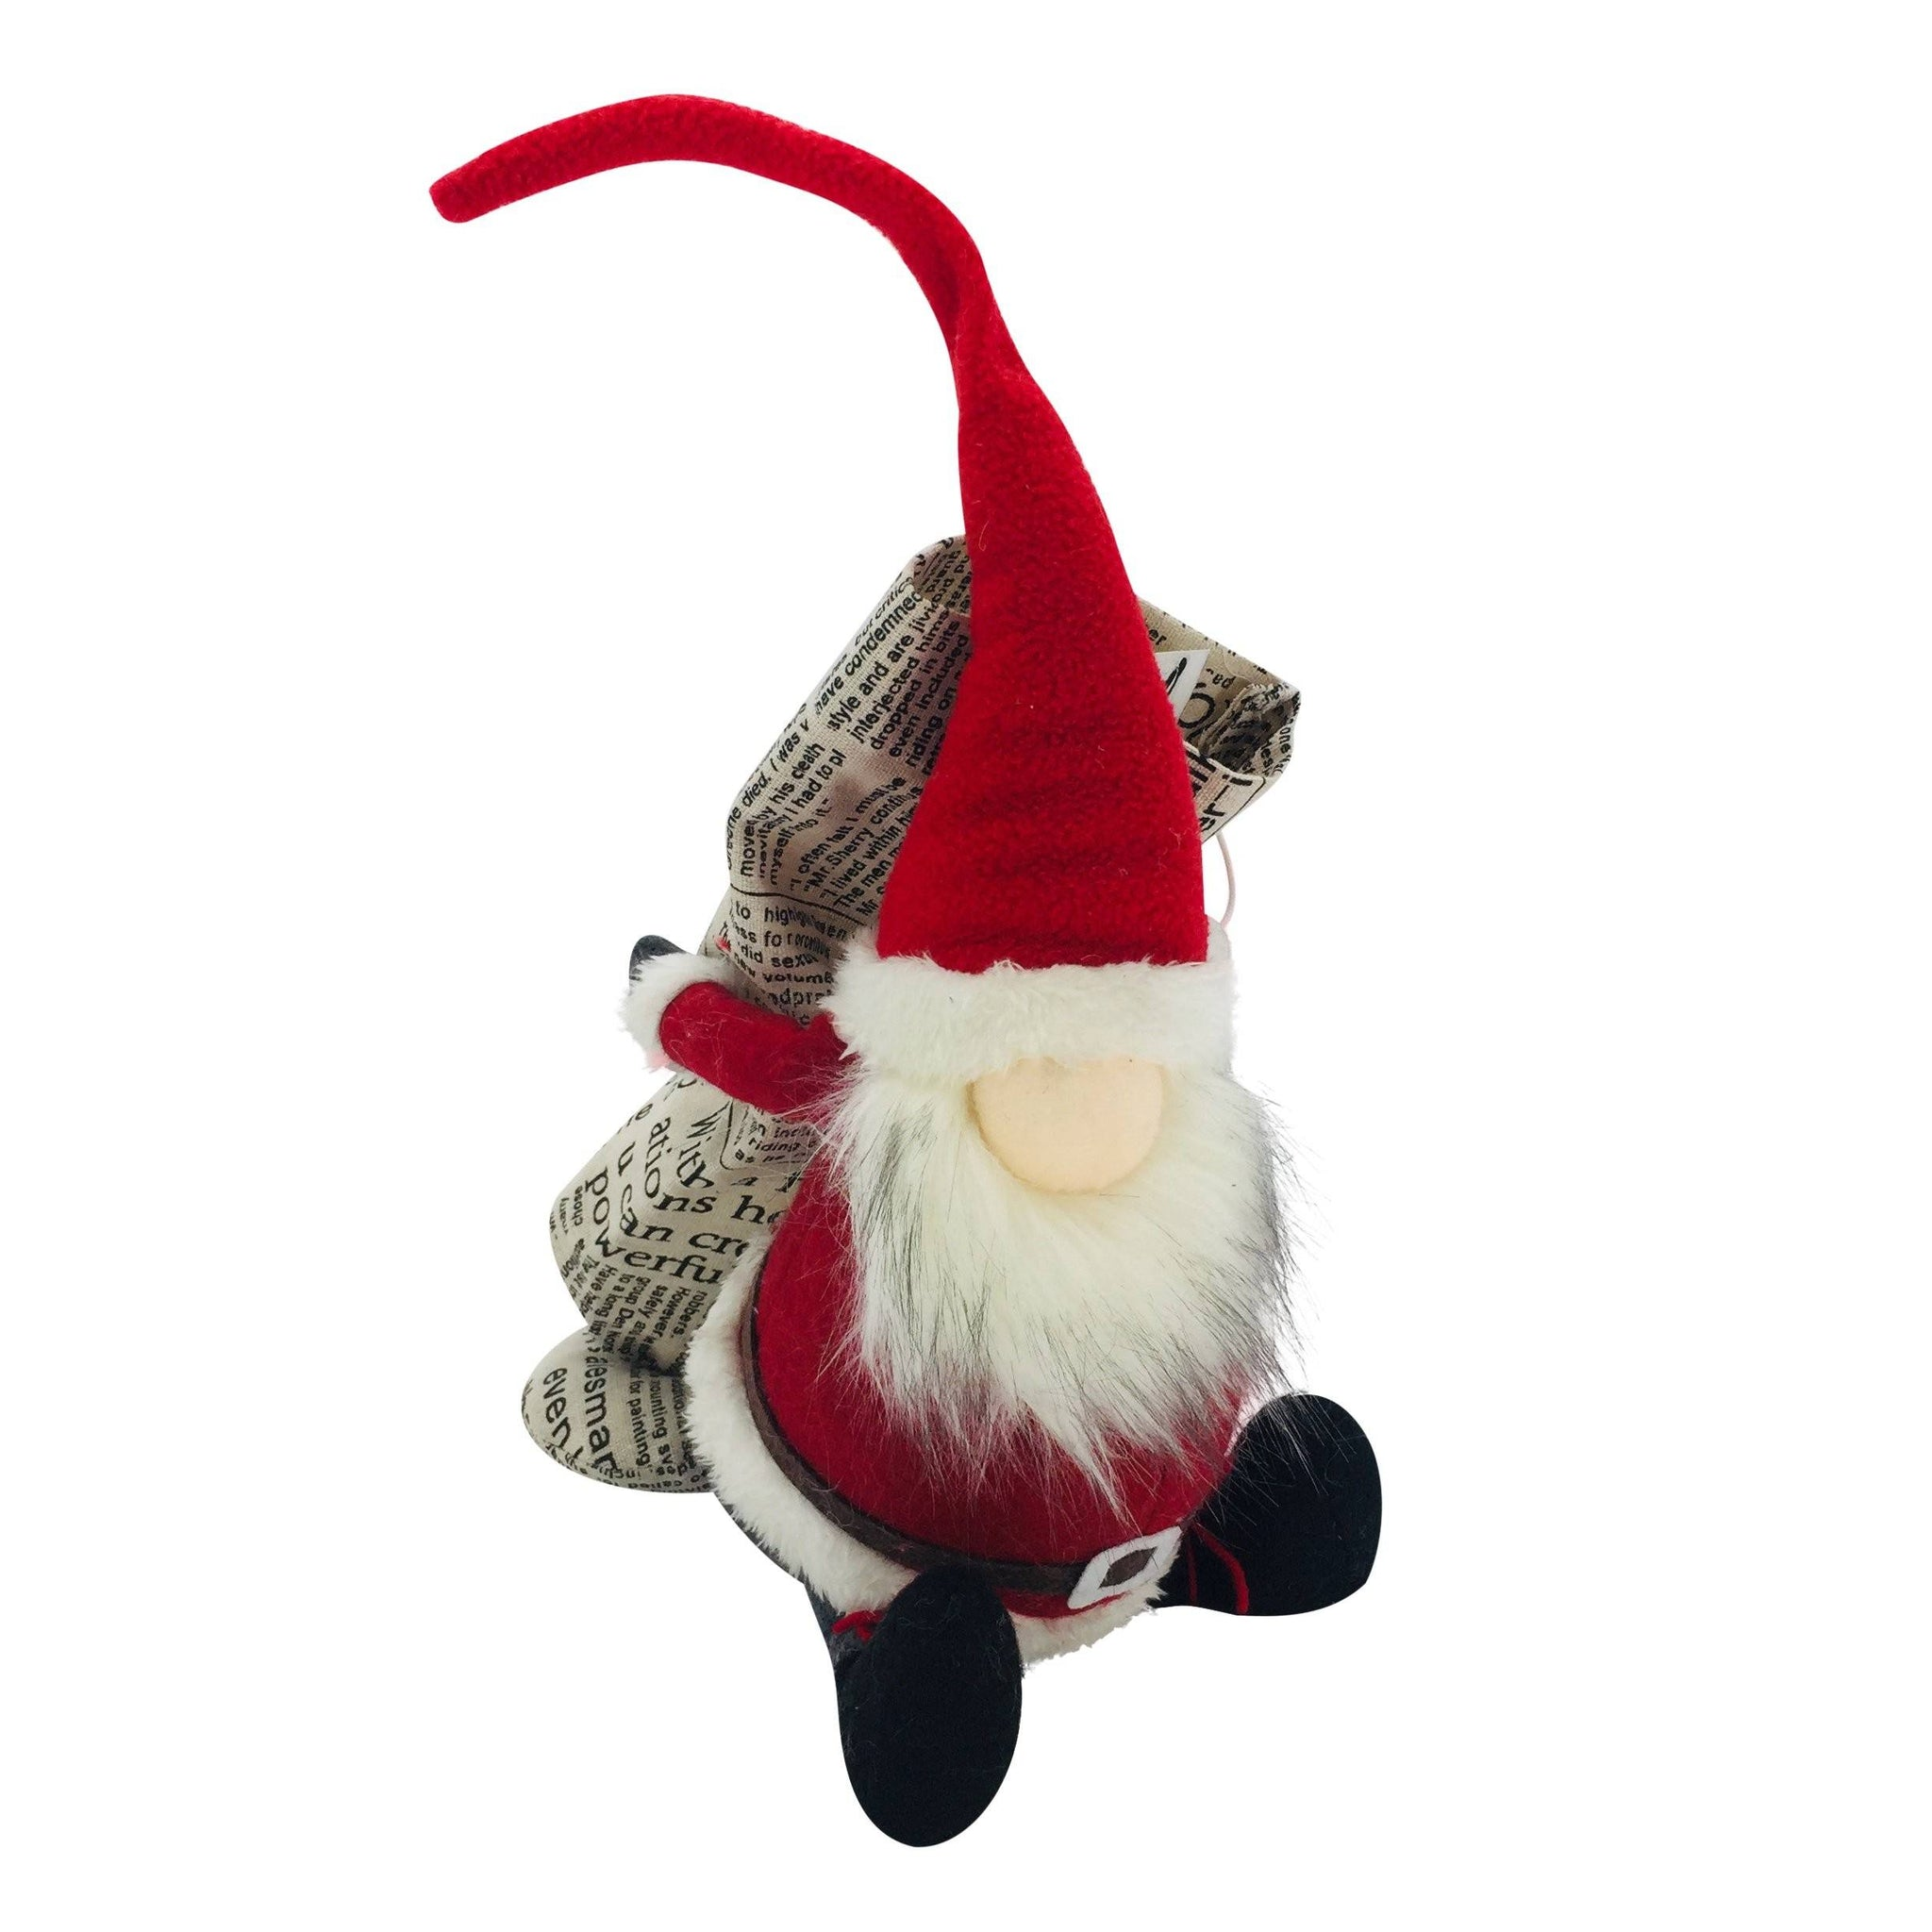 SANTA CLAUS GNOME BOTTLE HOLDER